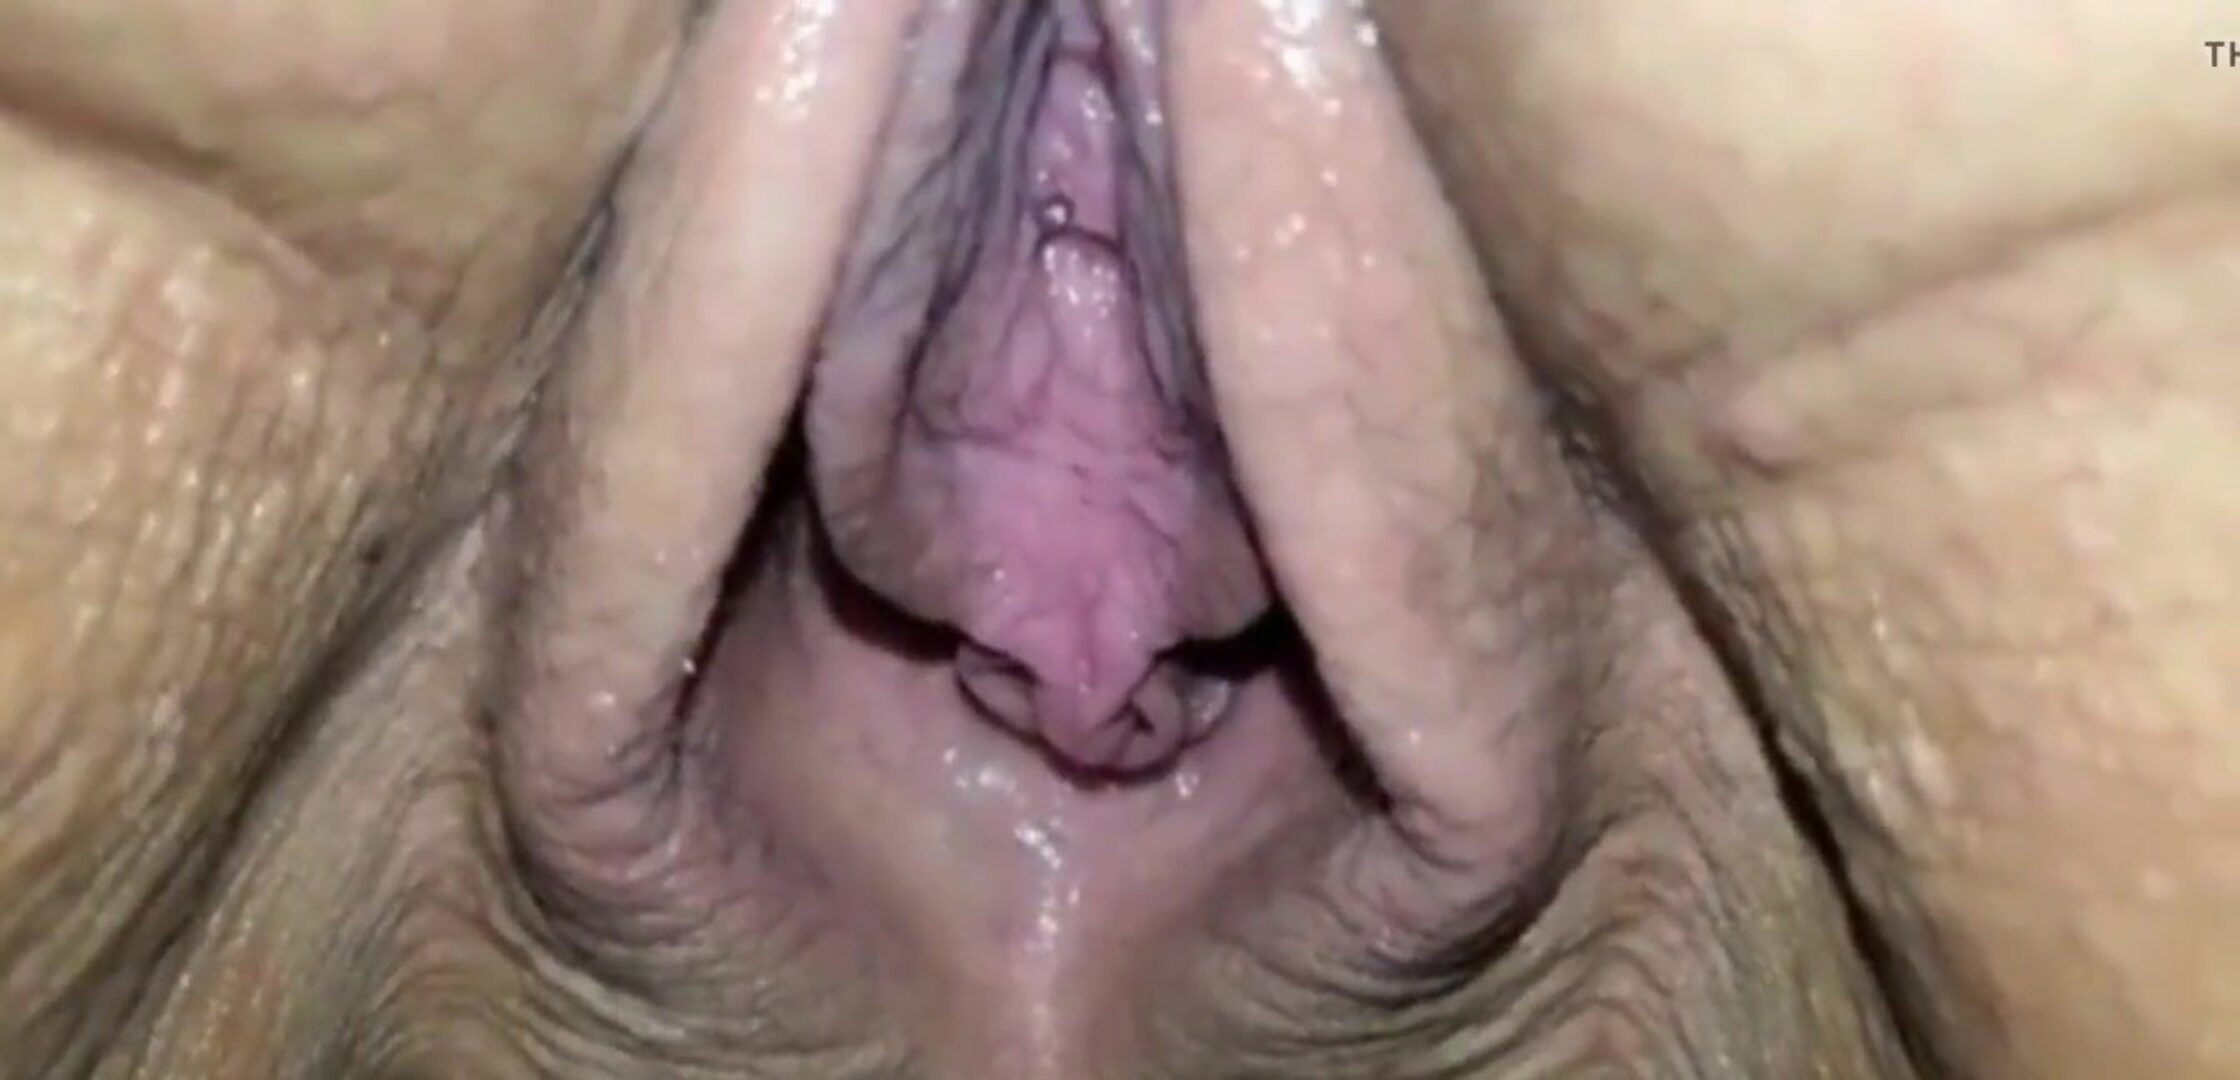 80yo Granny Luisa Dripping Cream, Free HD Porn ab: xHamster Watch 80yo Granny Luisa Dripping Cream clip on xHamster, the hottest HD hookup tube website with tons of free-for-all Grandma Mature & Granny Pornhub pornography movies